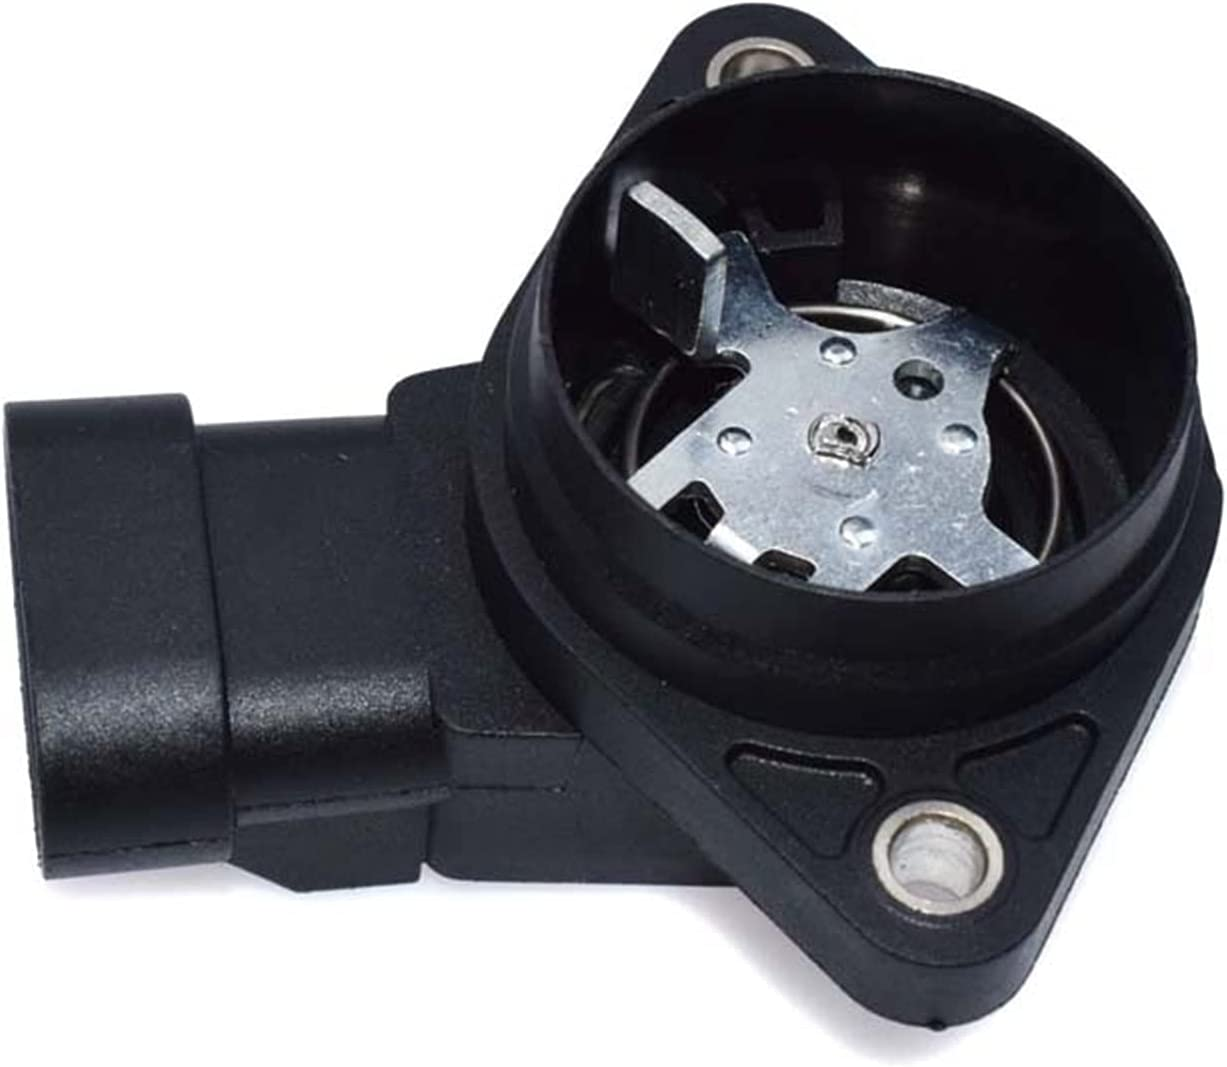 Throttle Position Sensor Light Weight Easy to Install Wear-Resis